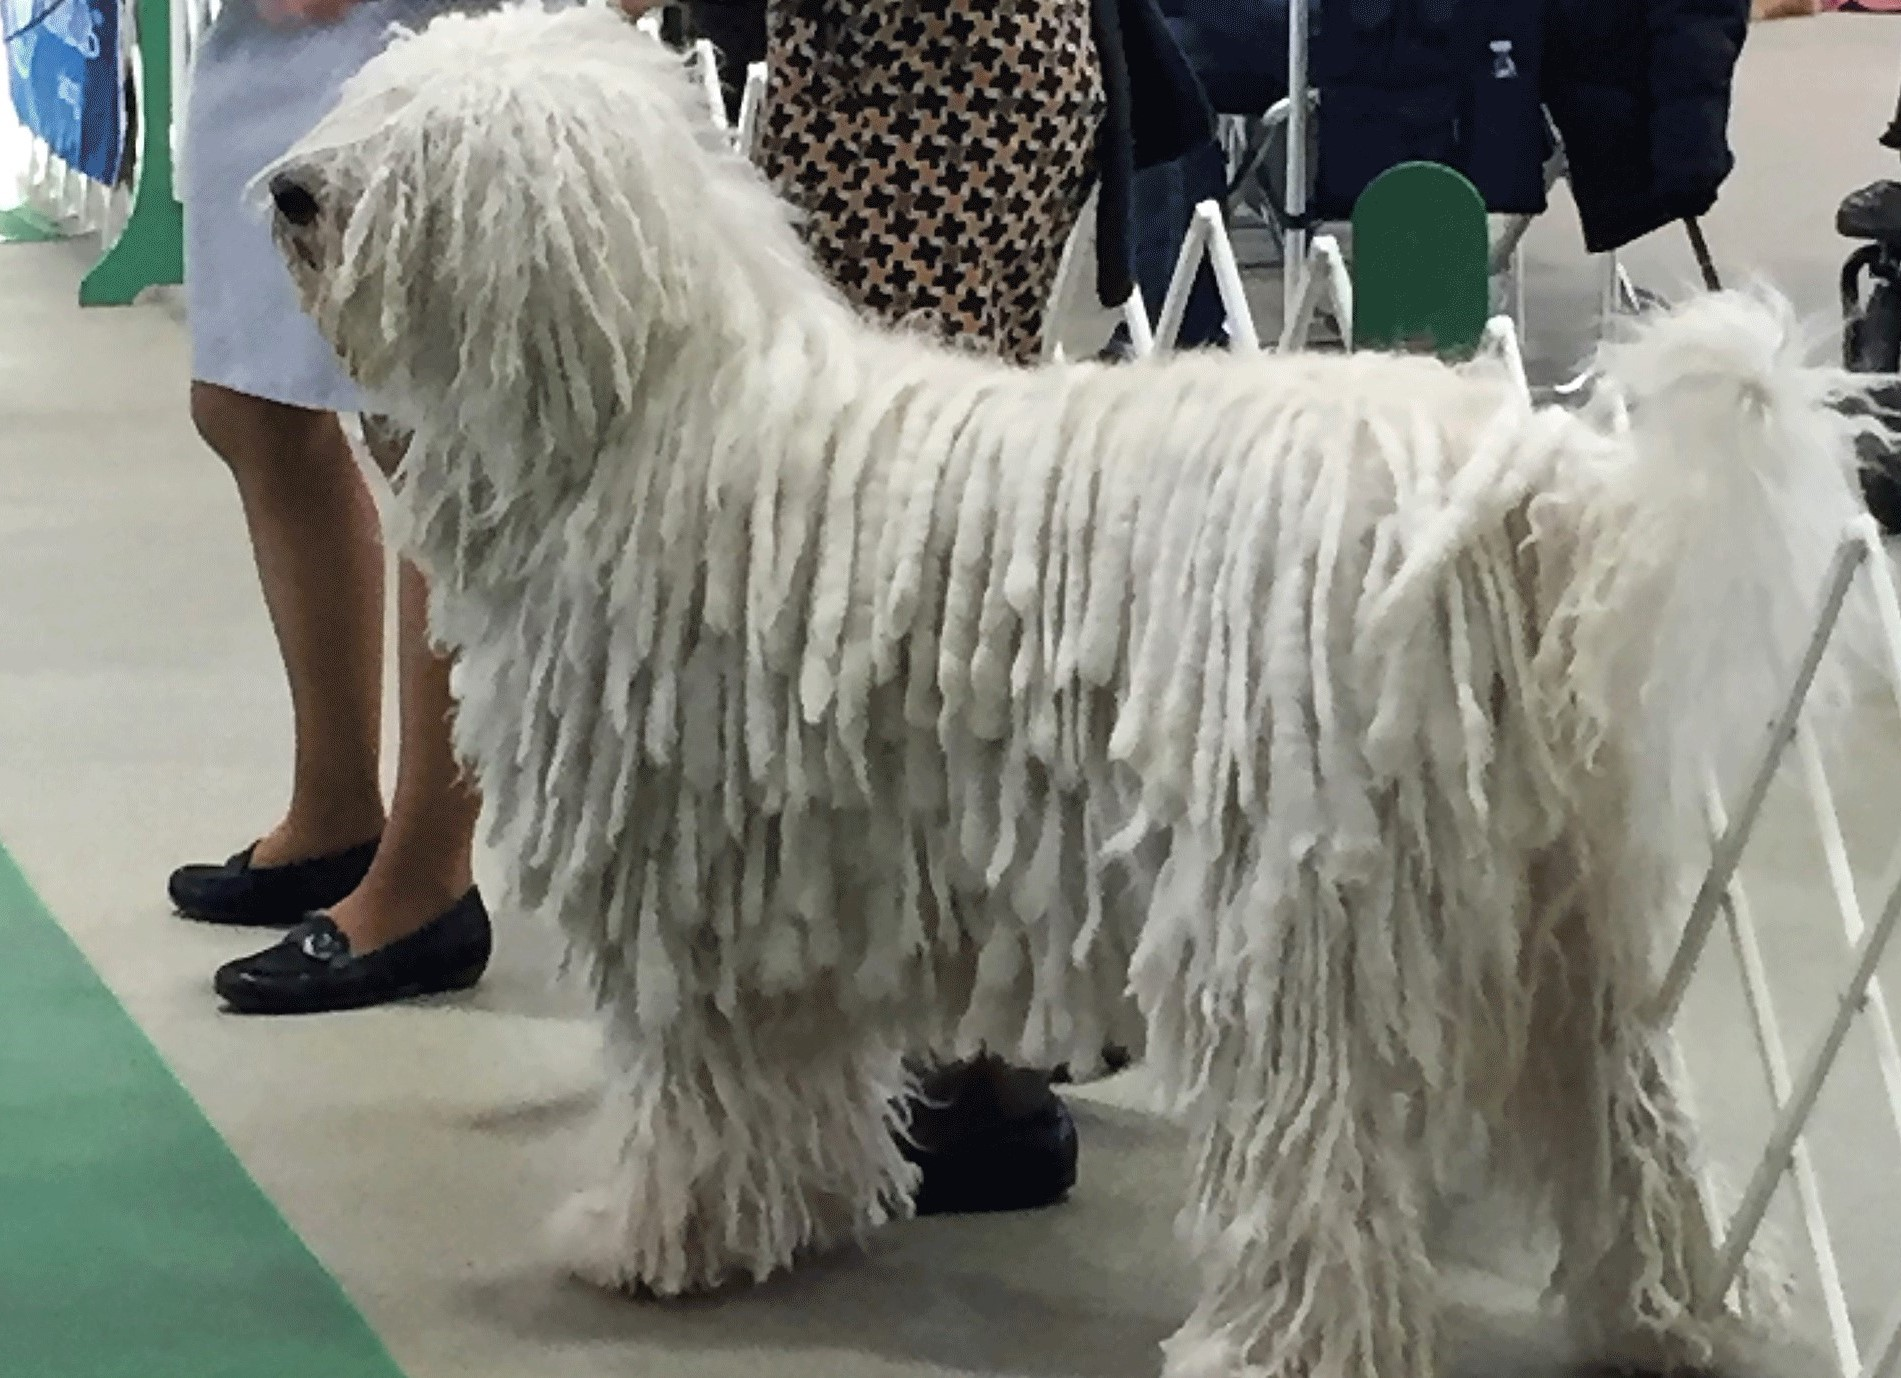 Logansport-Dog-Show-Auburn- Indiana